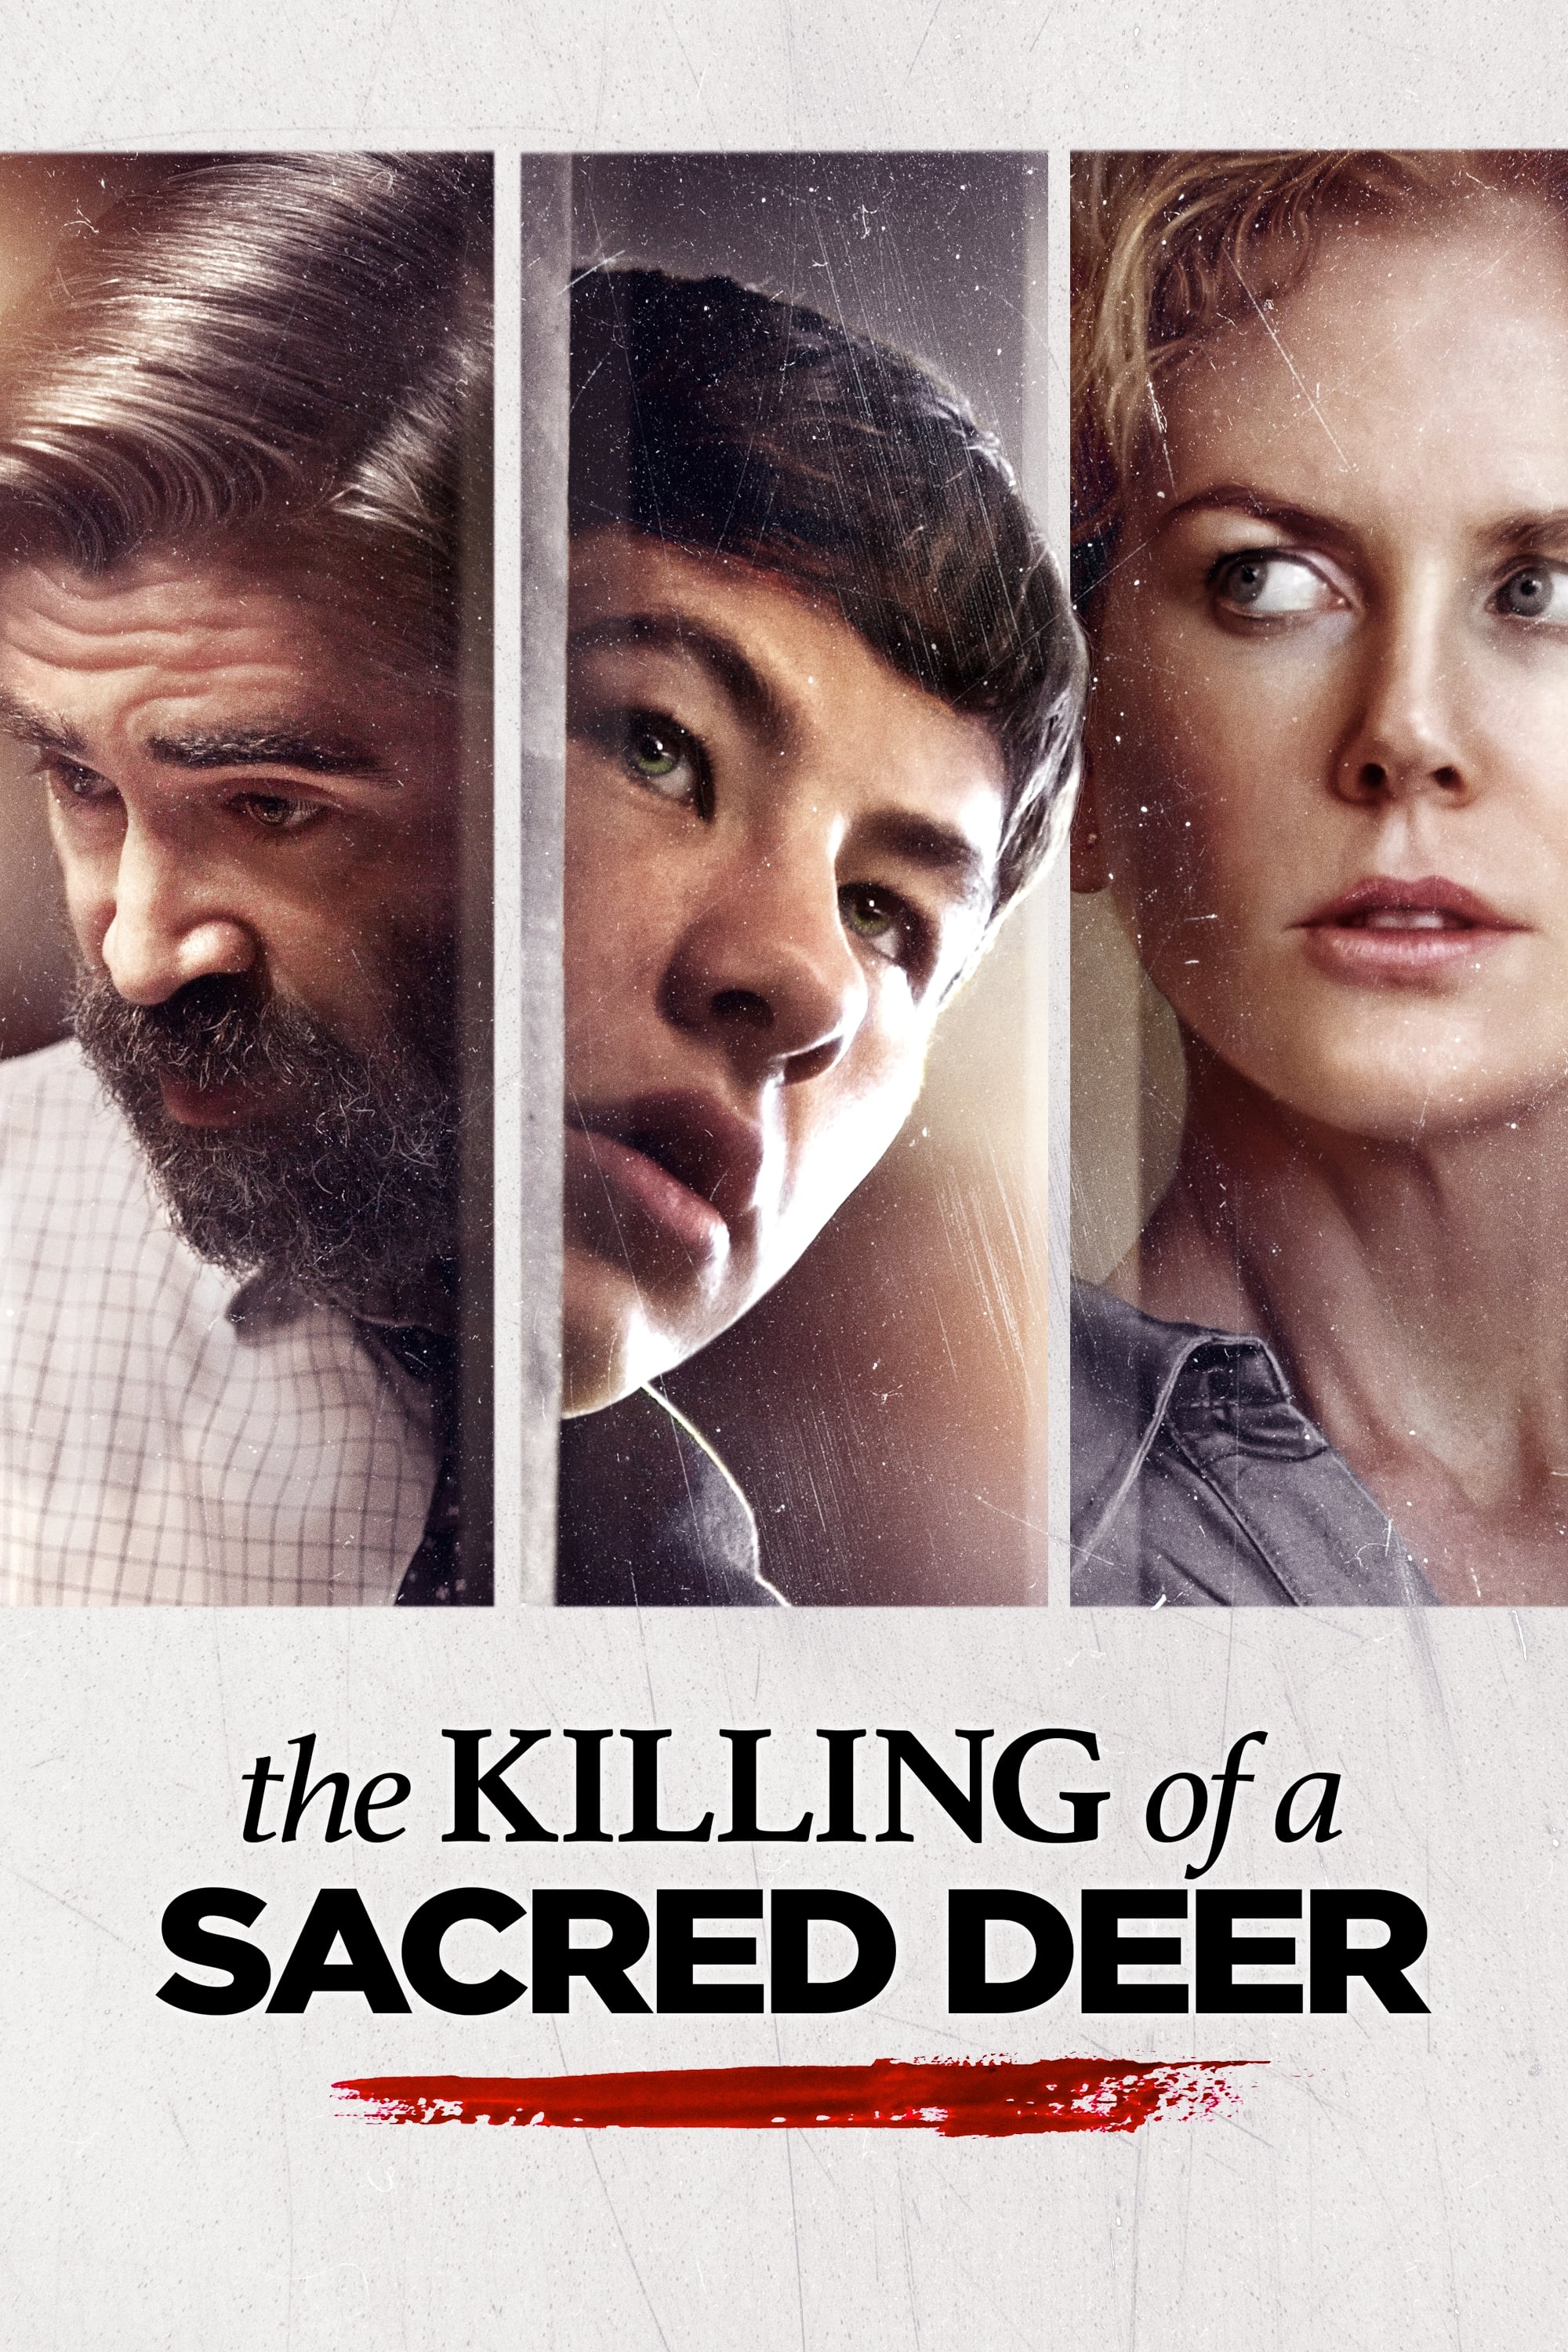 The Killing of a Sacred Deer / Ο Θάνατος Του Ιερού Ελαφιού